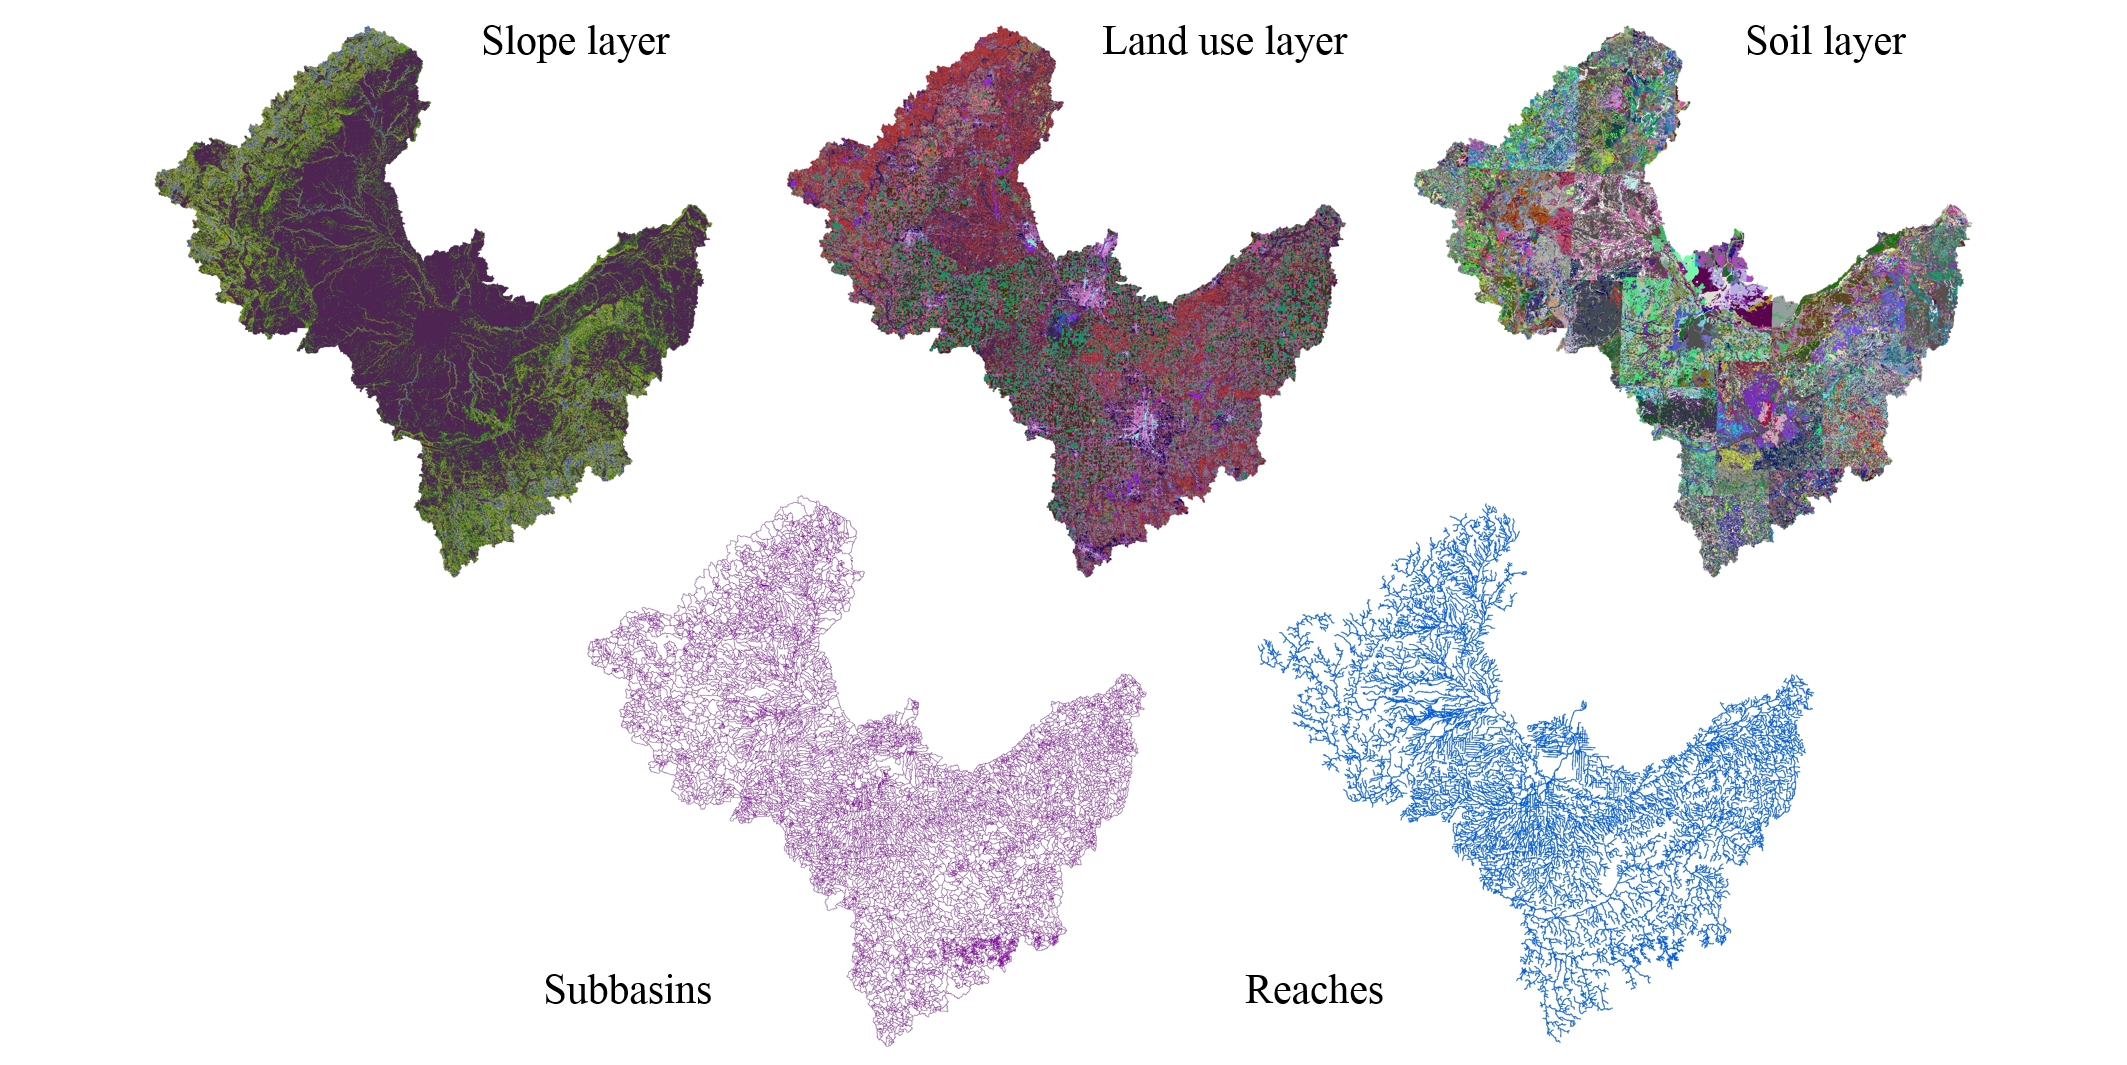 Photo of geospatical layers including slope, land use, soil type, subbasin boundaries, and river networks as used to build a biophysical model for the Saginaw River watershed in Michigan.